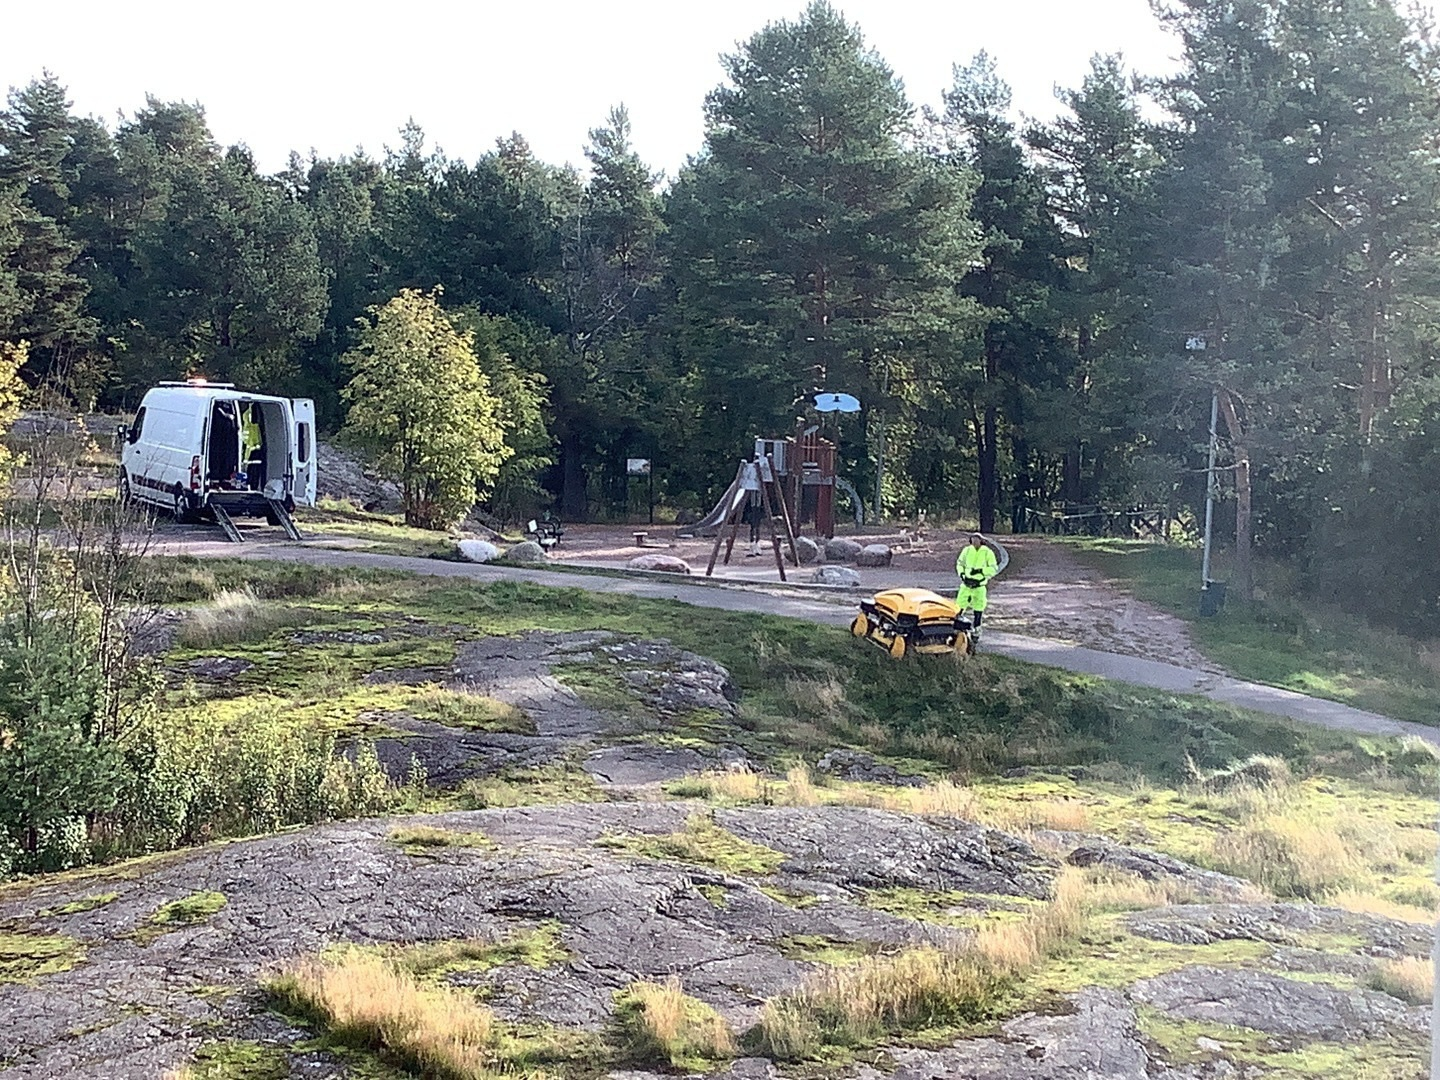 A park, with playground, rocks, a van and a robot lawn mower